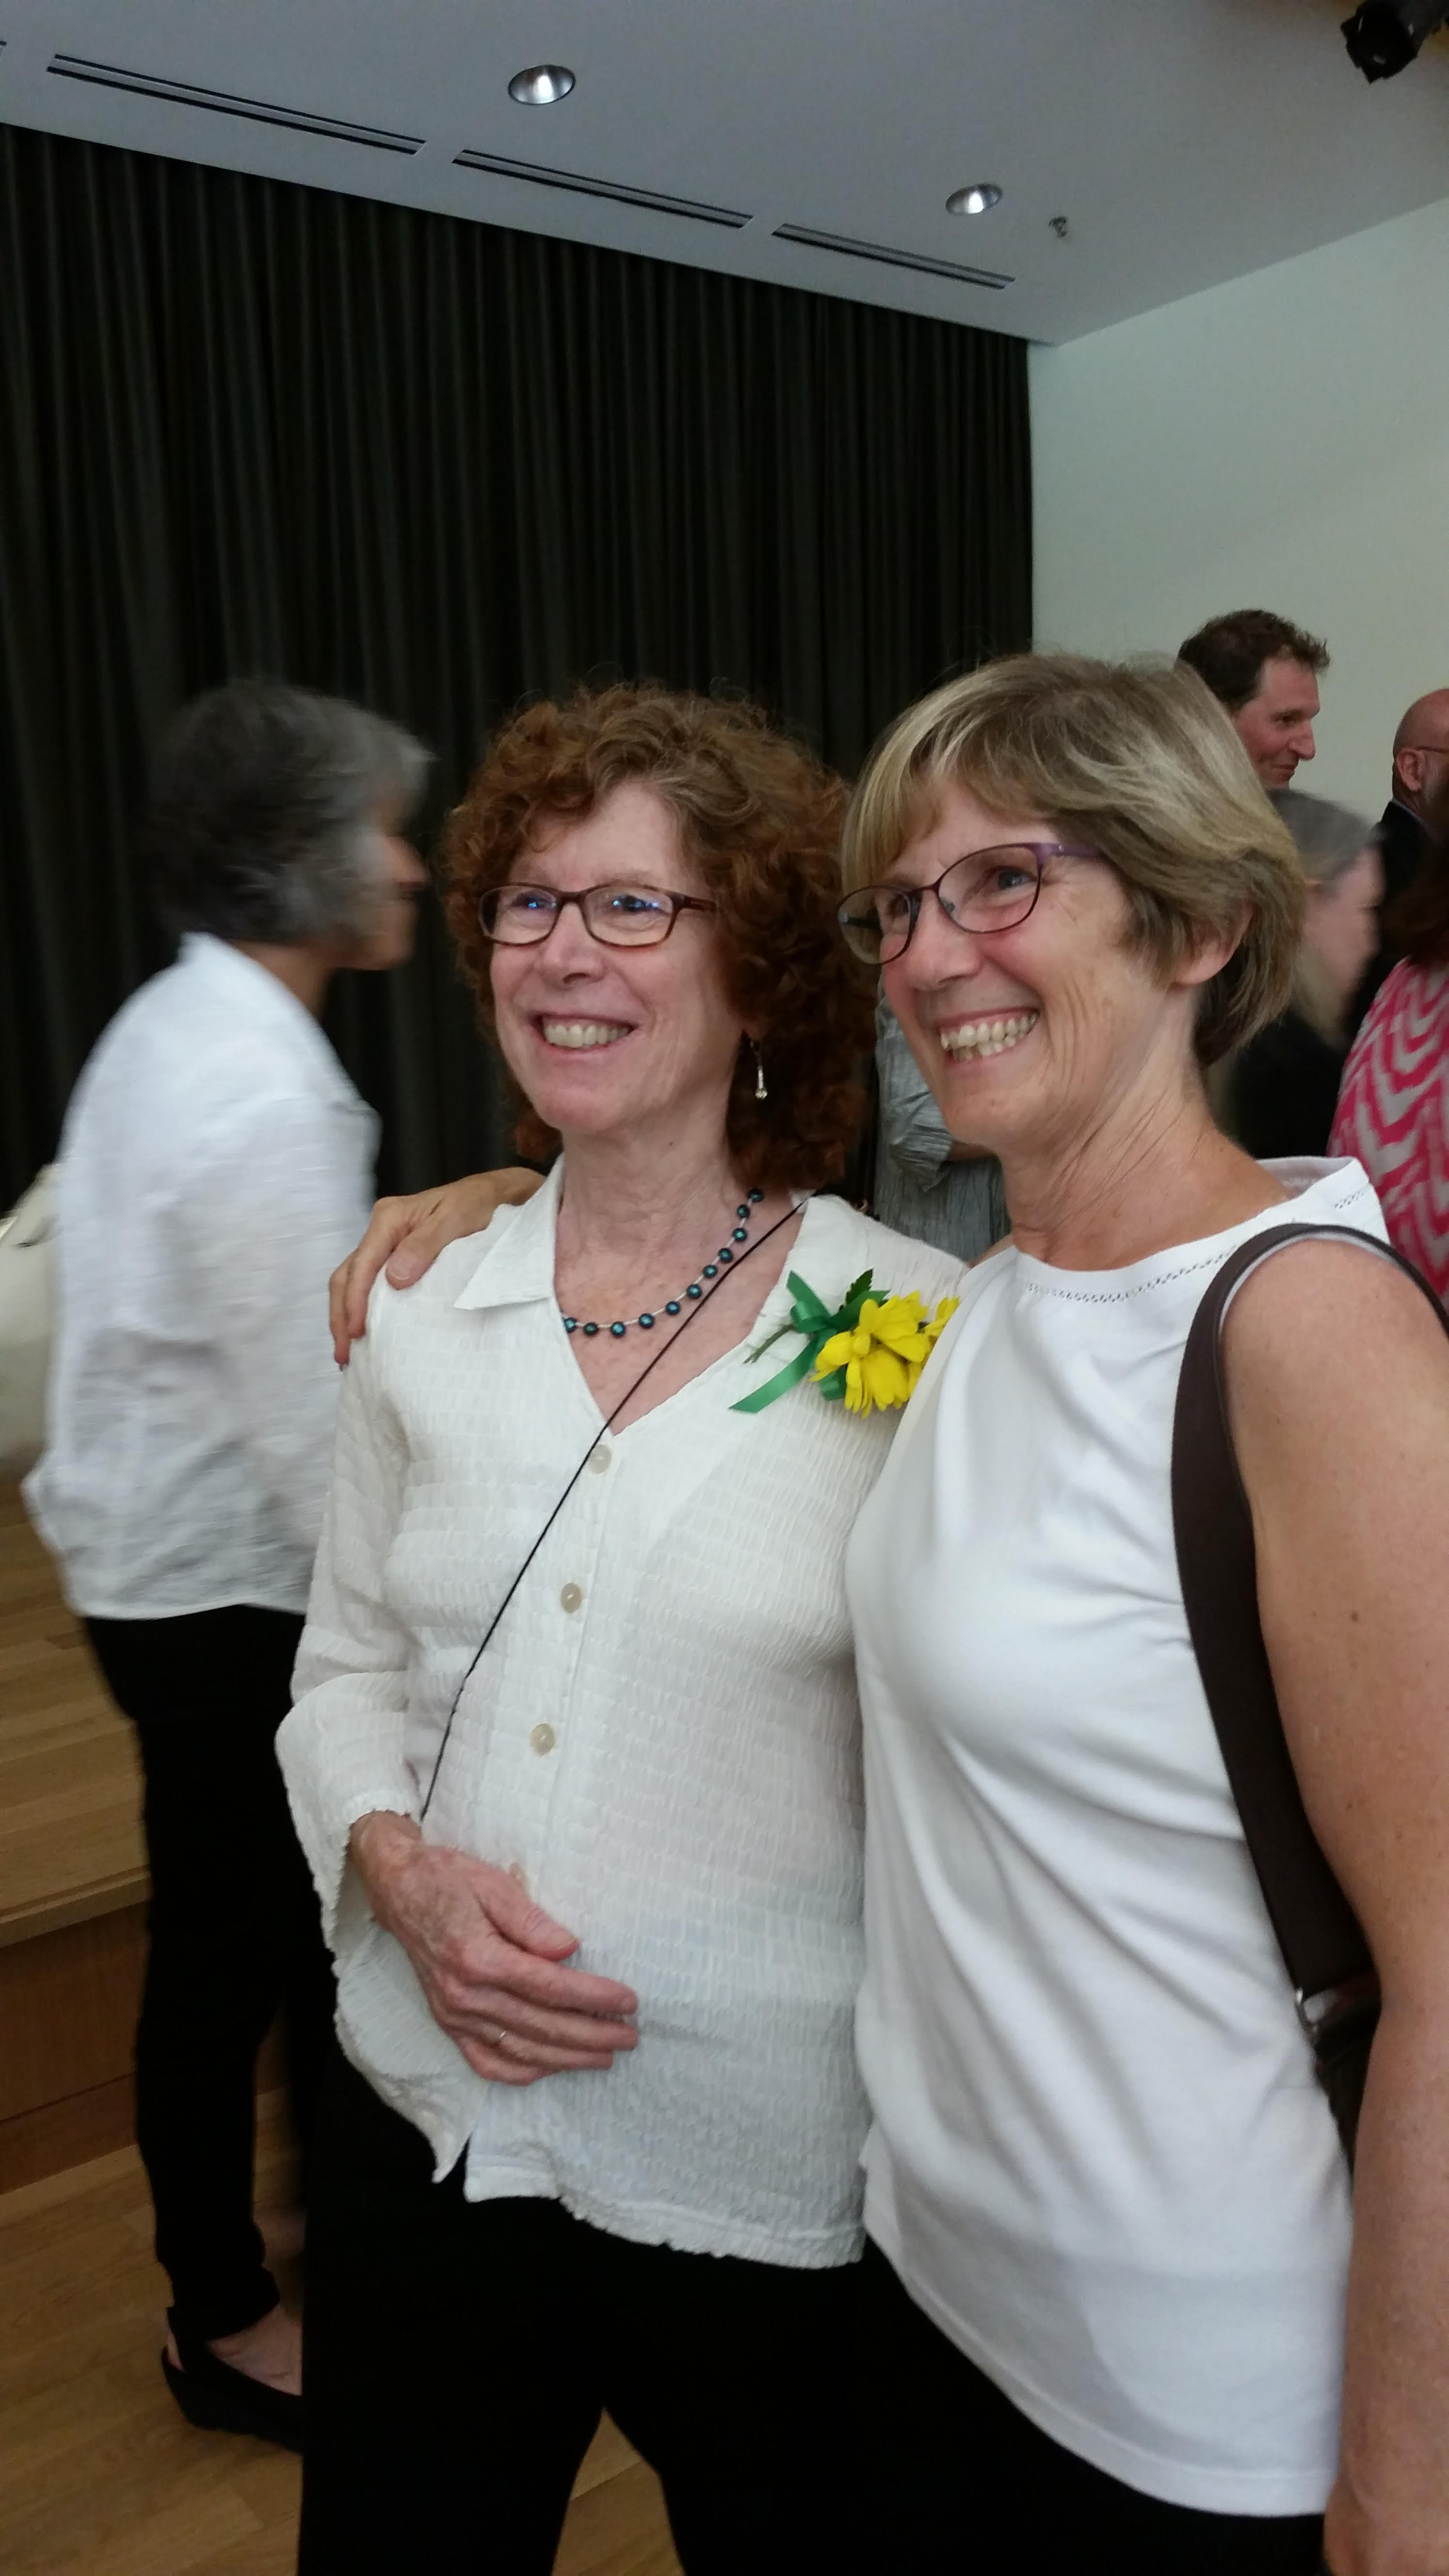 Sandra Morgen (left) pictured with friend after receiving the University of Oregon Research Faculty Excellence Award for Outstanding Research Career